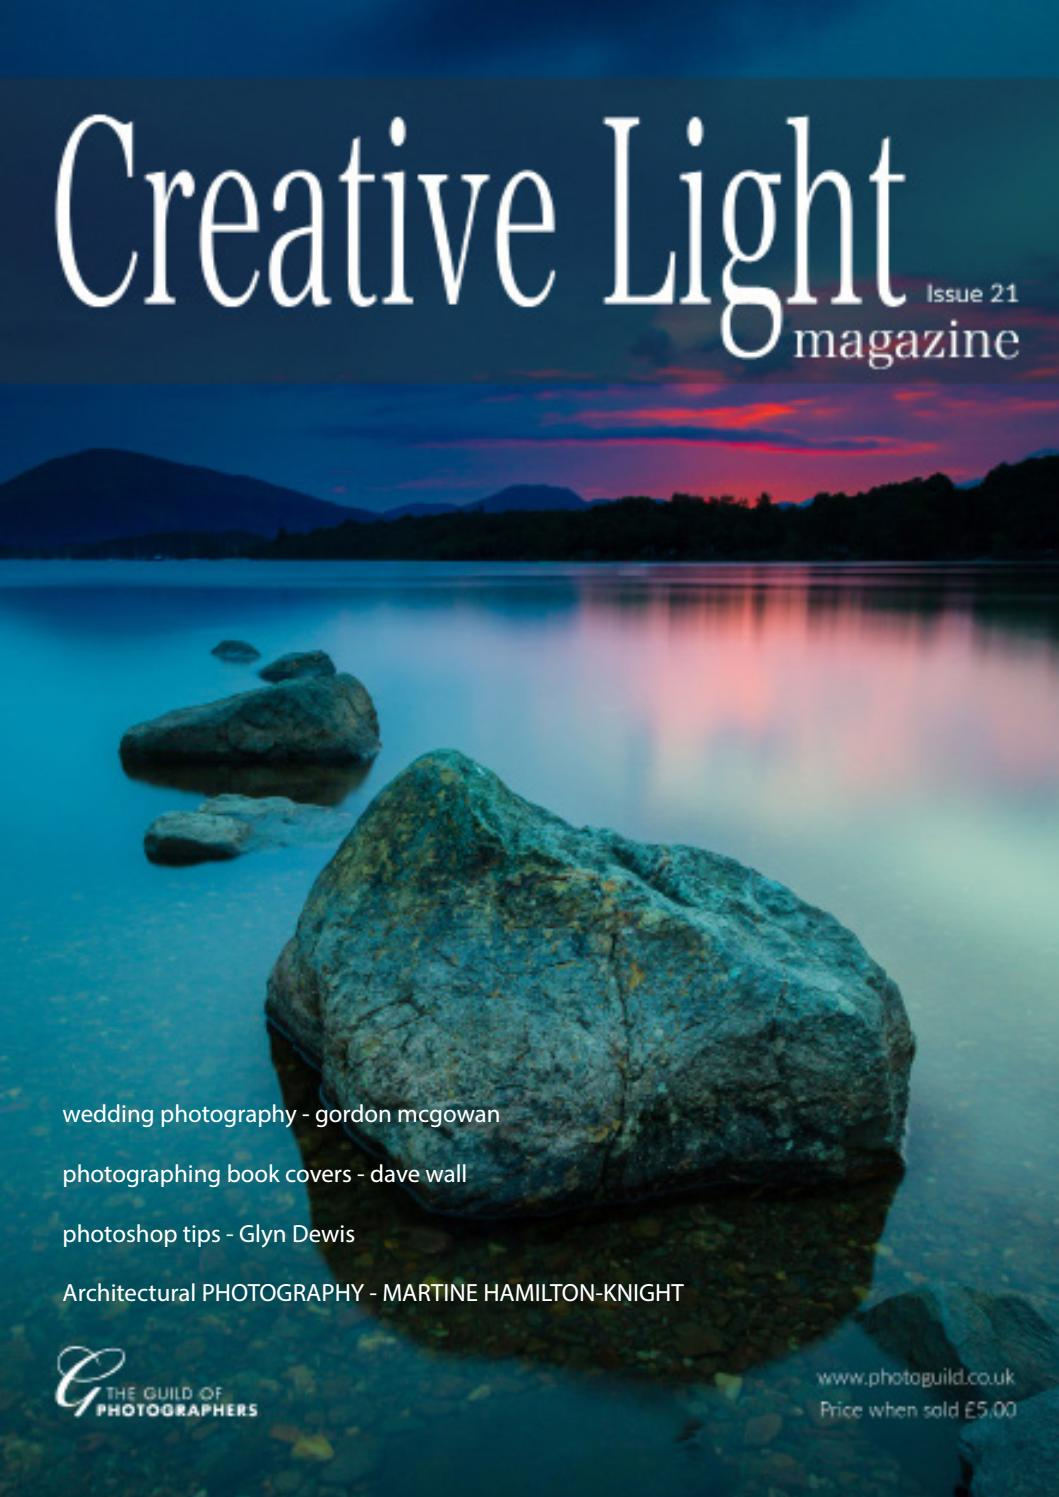 Creative Light - Issue 21 by Guild of Photographers - issuu